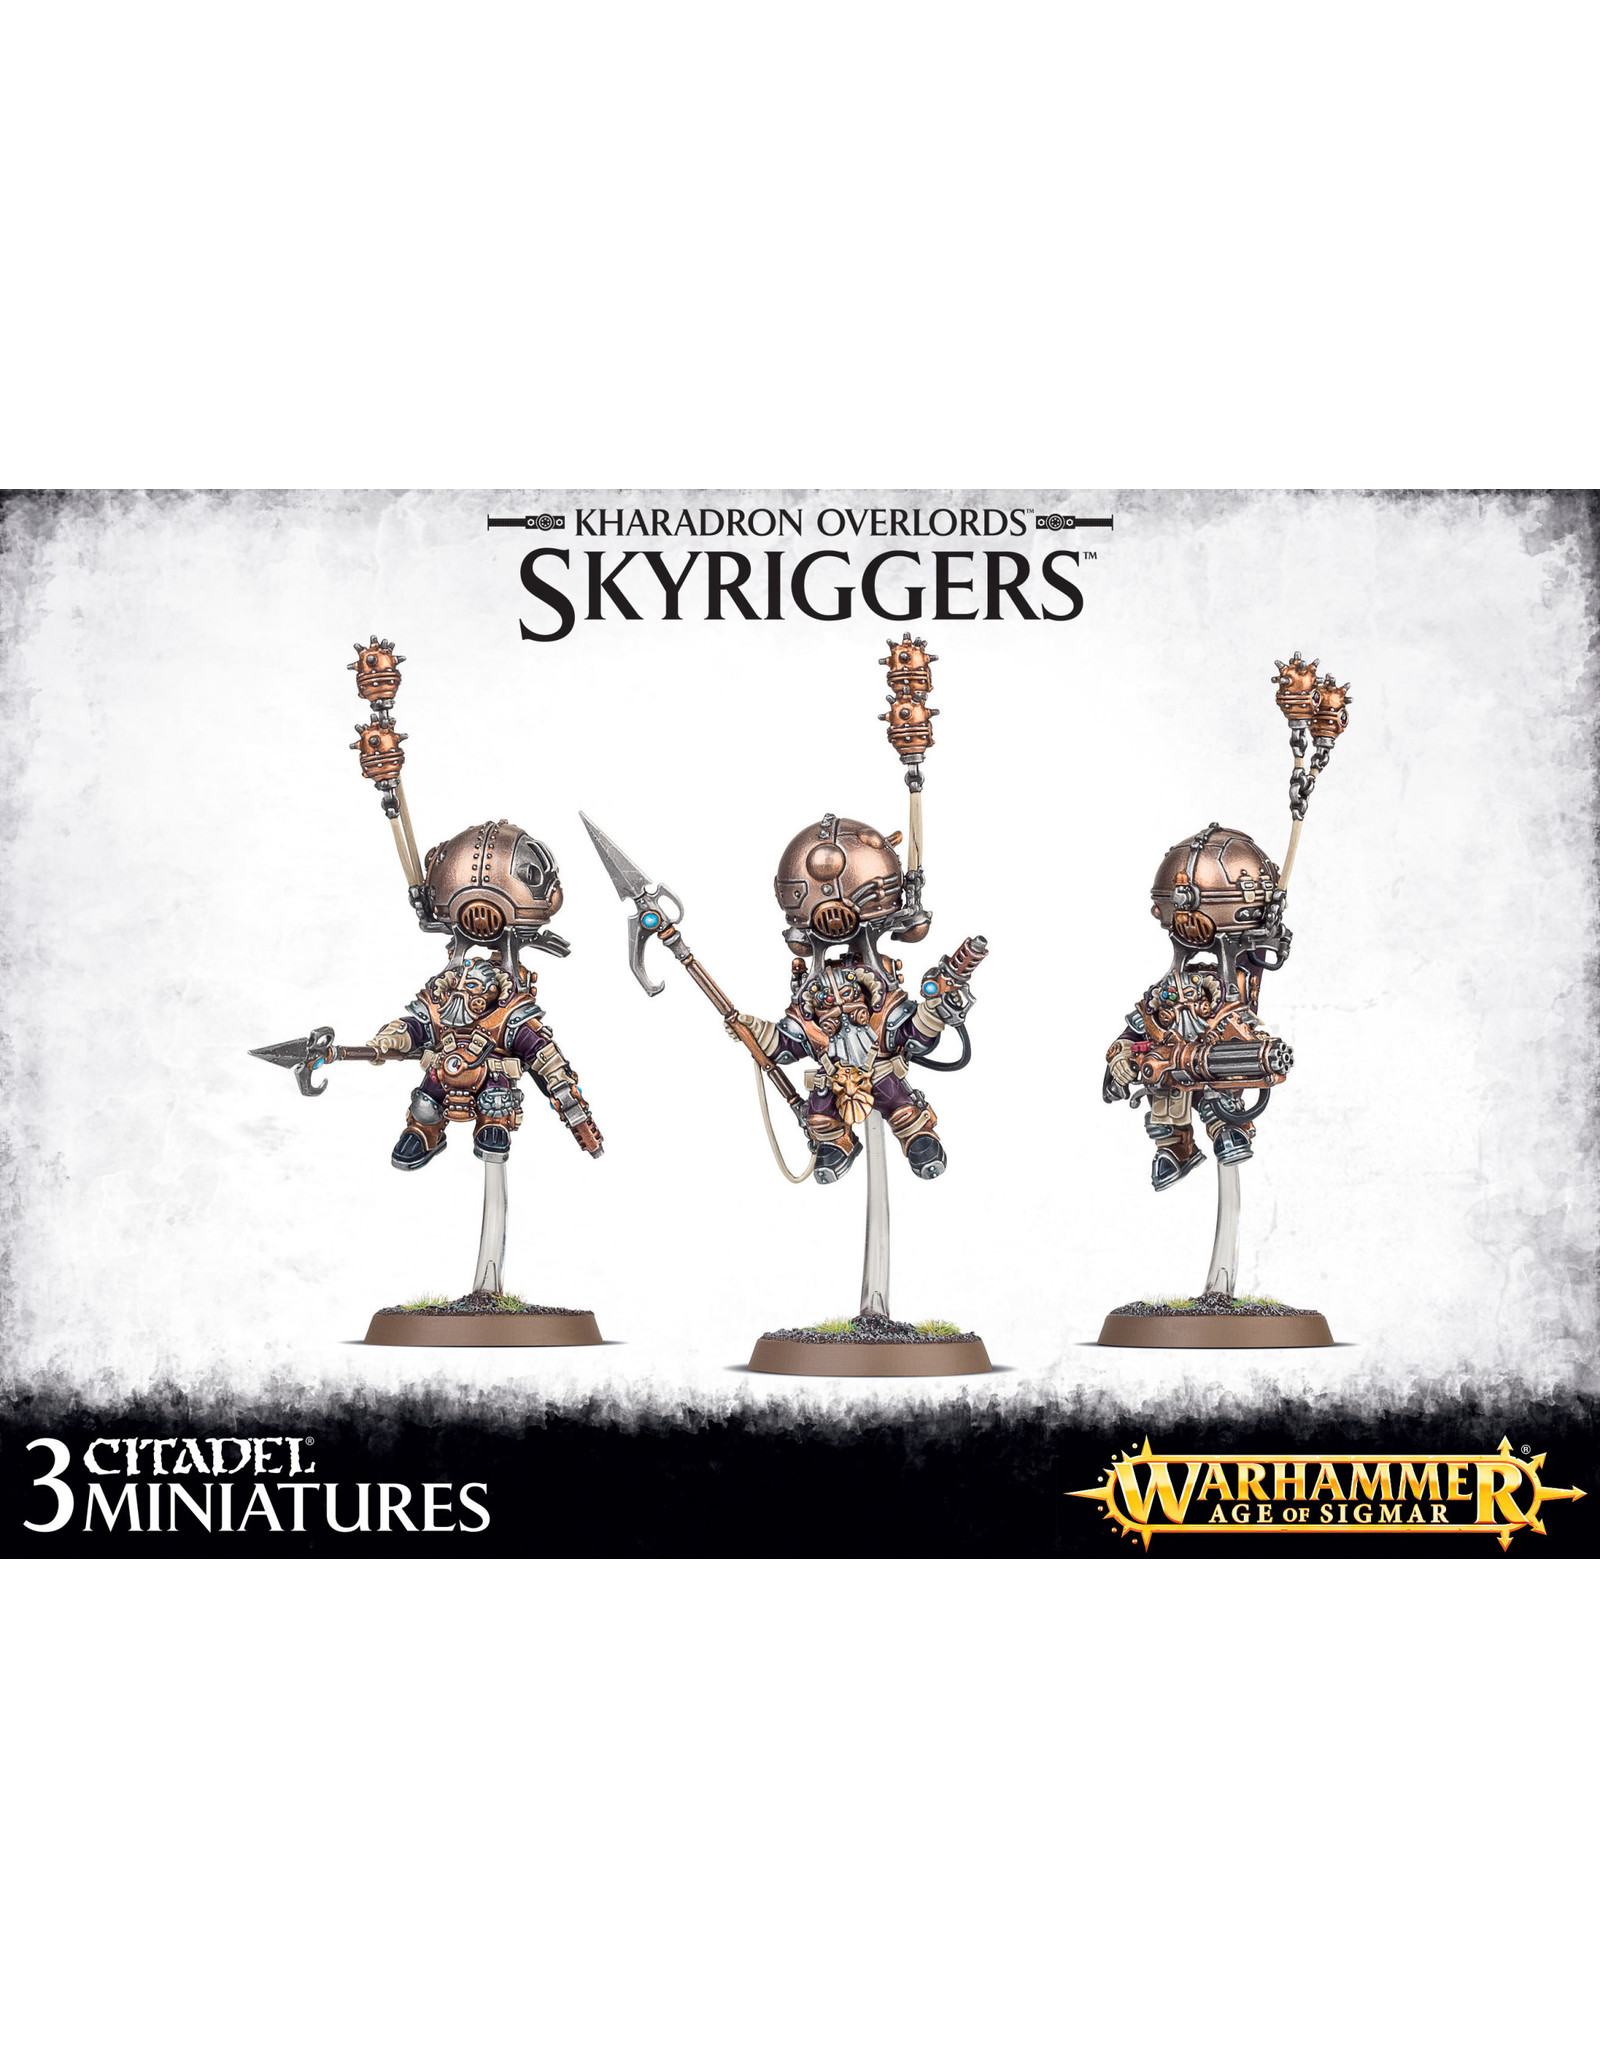 Age of Sigmar Kharadron Overlords Skyriggers